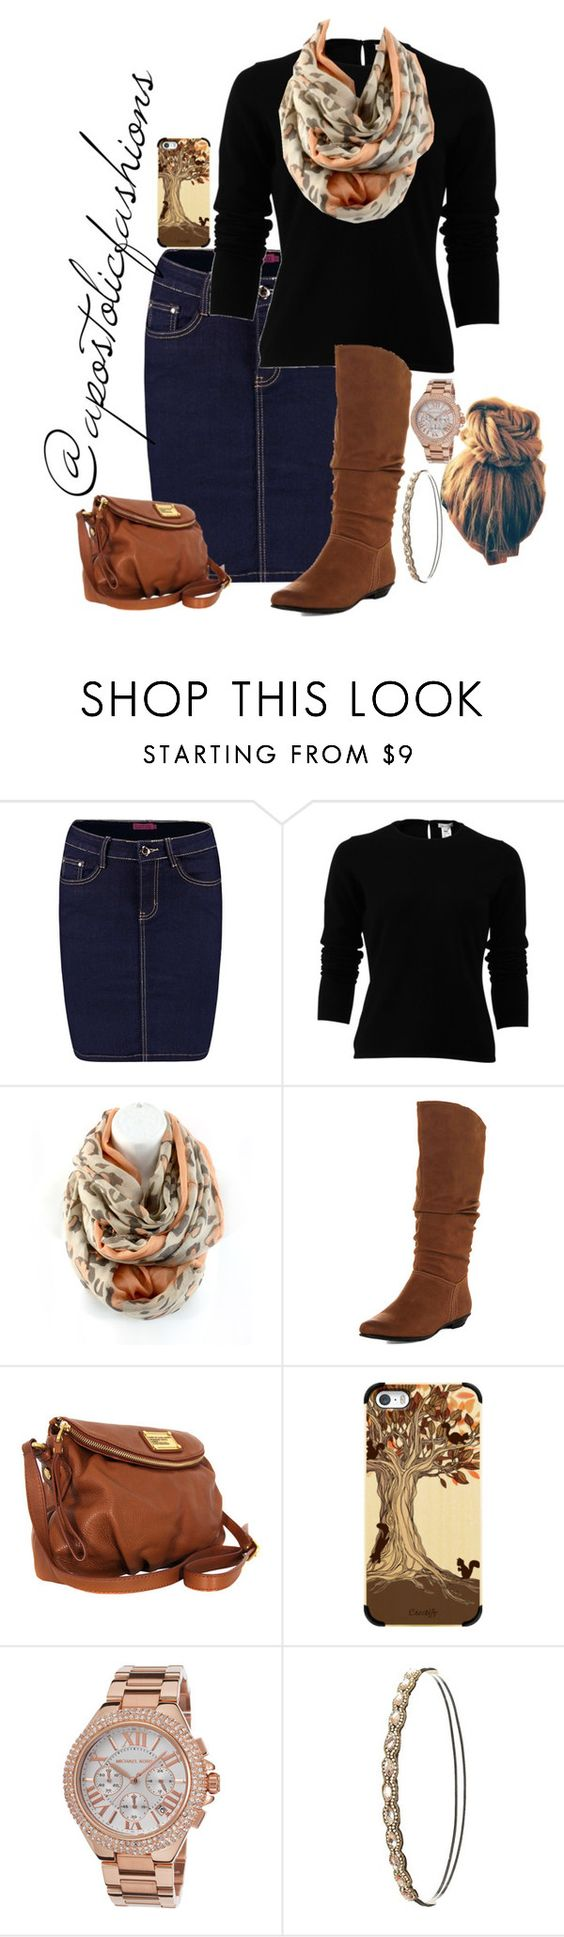 """""""Apostolic Fashions #1475"""" by apostolicfashions on Polyvore featuring Boohoo, Oscar de la Renta, Dorothy Perkins, Marc by Marc Jacobs, Casetify, Michael Kors, Charlotte Russe, modestlykay and modestlywhit"""